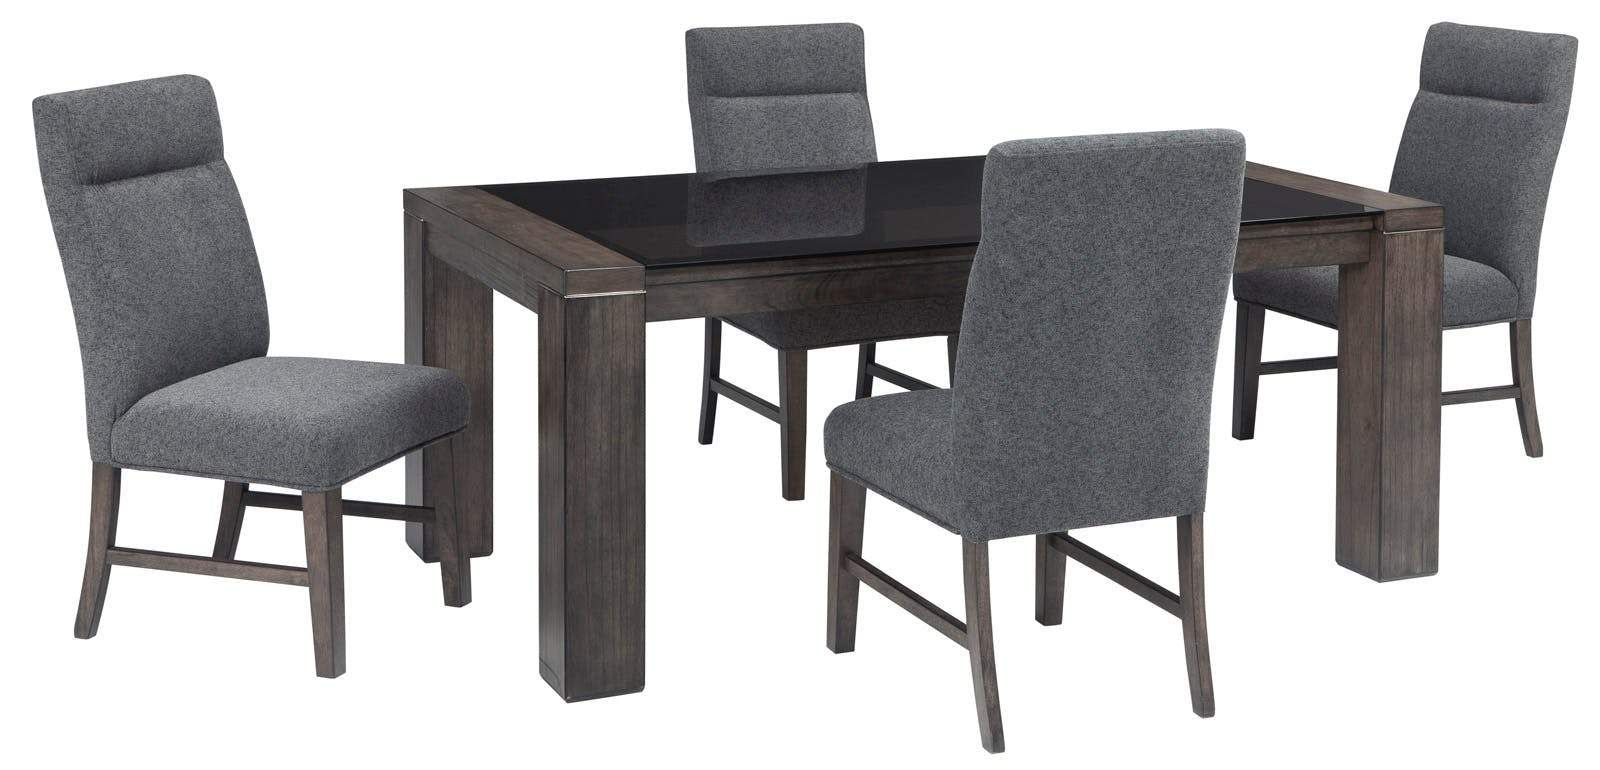 Chansey Dining Set Dining Room Furniture Sets Dream Dining Room Dining Table In Kitchen